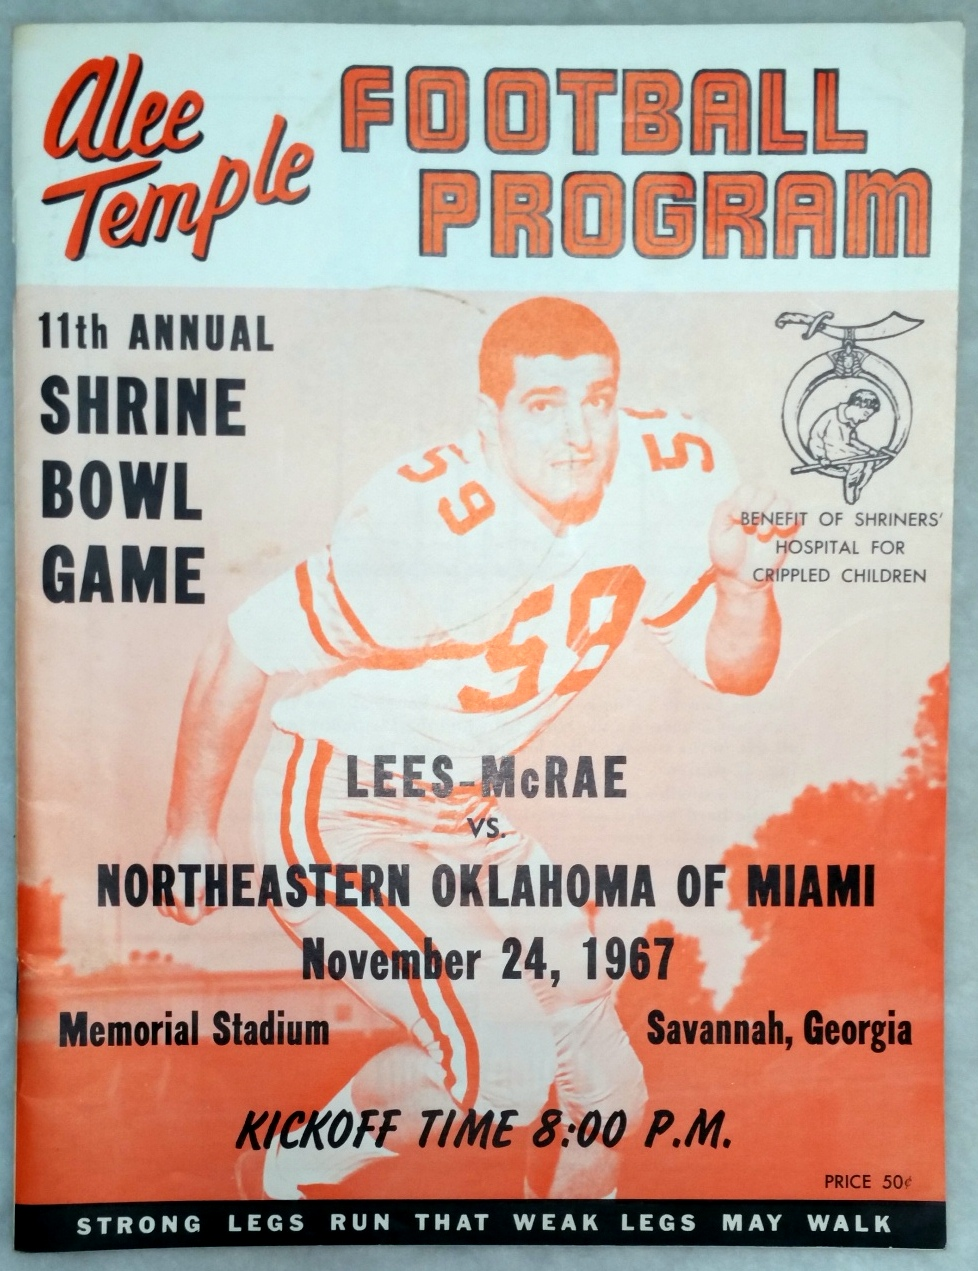 Image for 11th Annual Shrine Bowl Game:  Lees-McRae Vs. Northeastern Oklahoma of Miami, November 24, 1967, Memorial Stadium, Savannah, Georgia (Football Program)